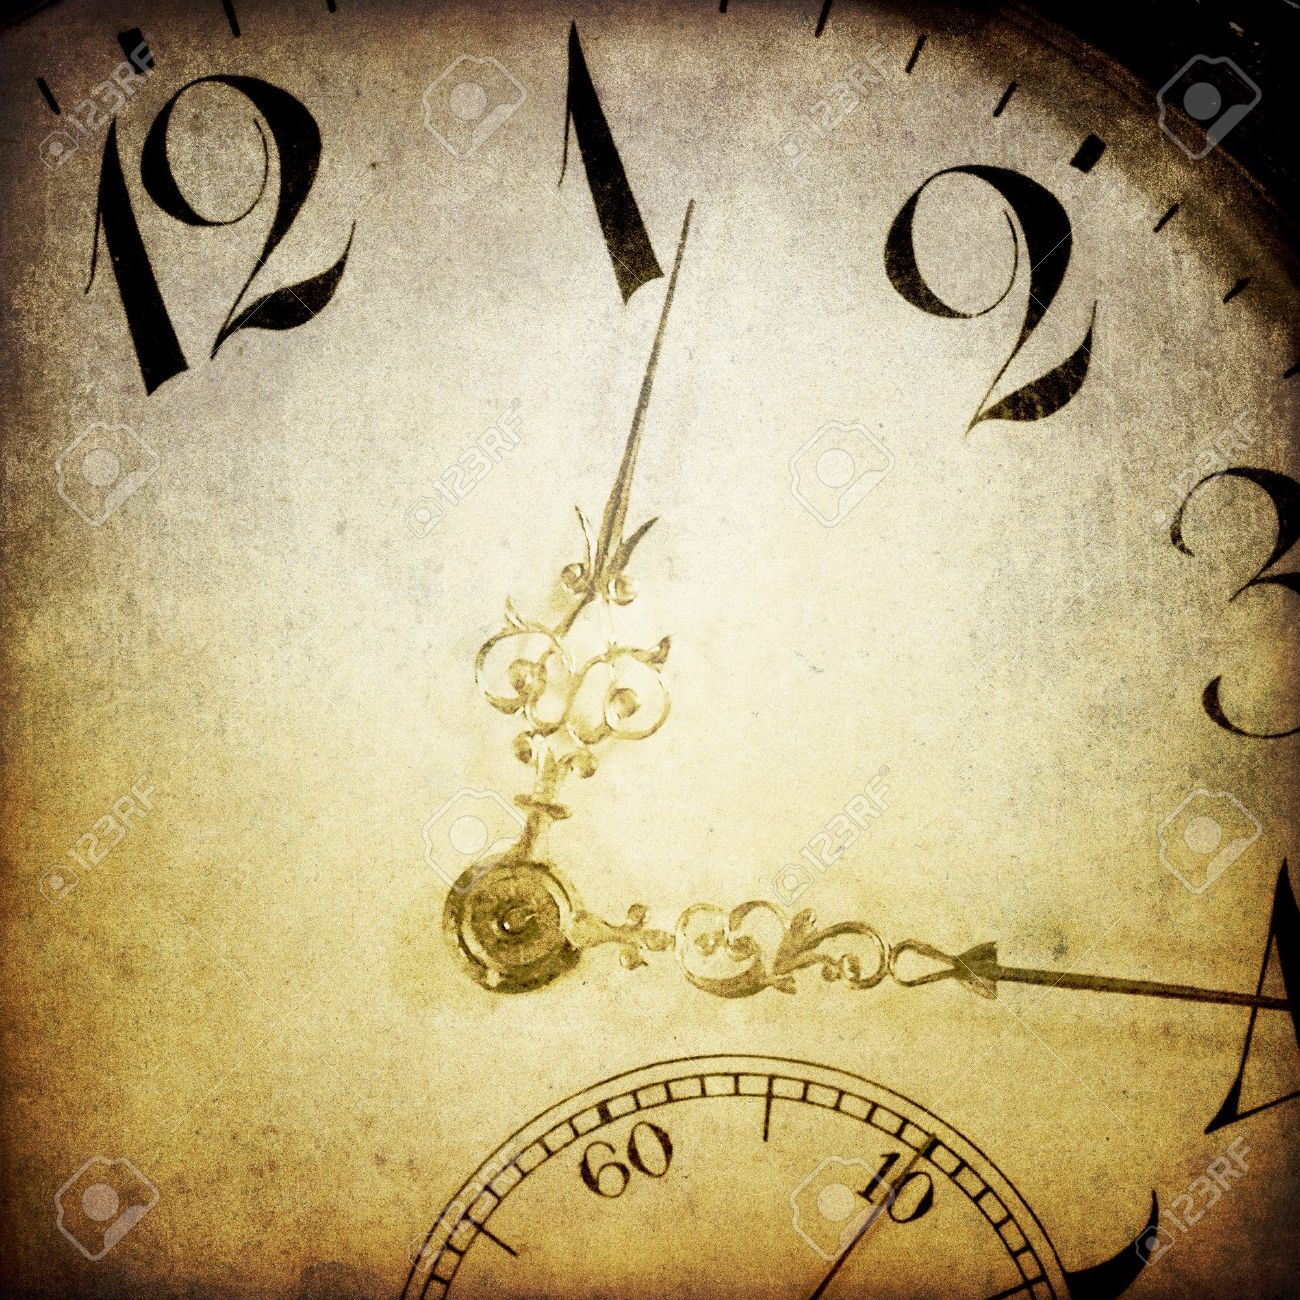 Vintage clock face. Abstract time theme background. Stock Photo - 7782517